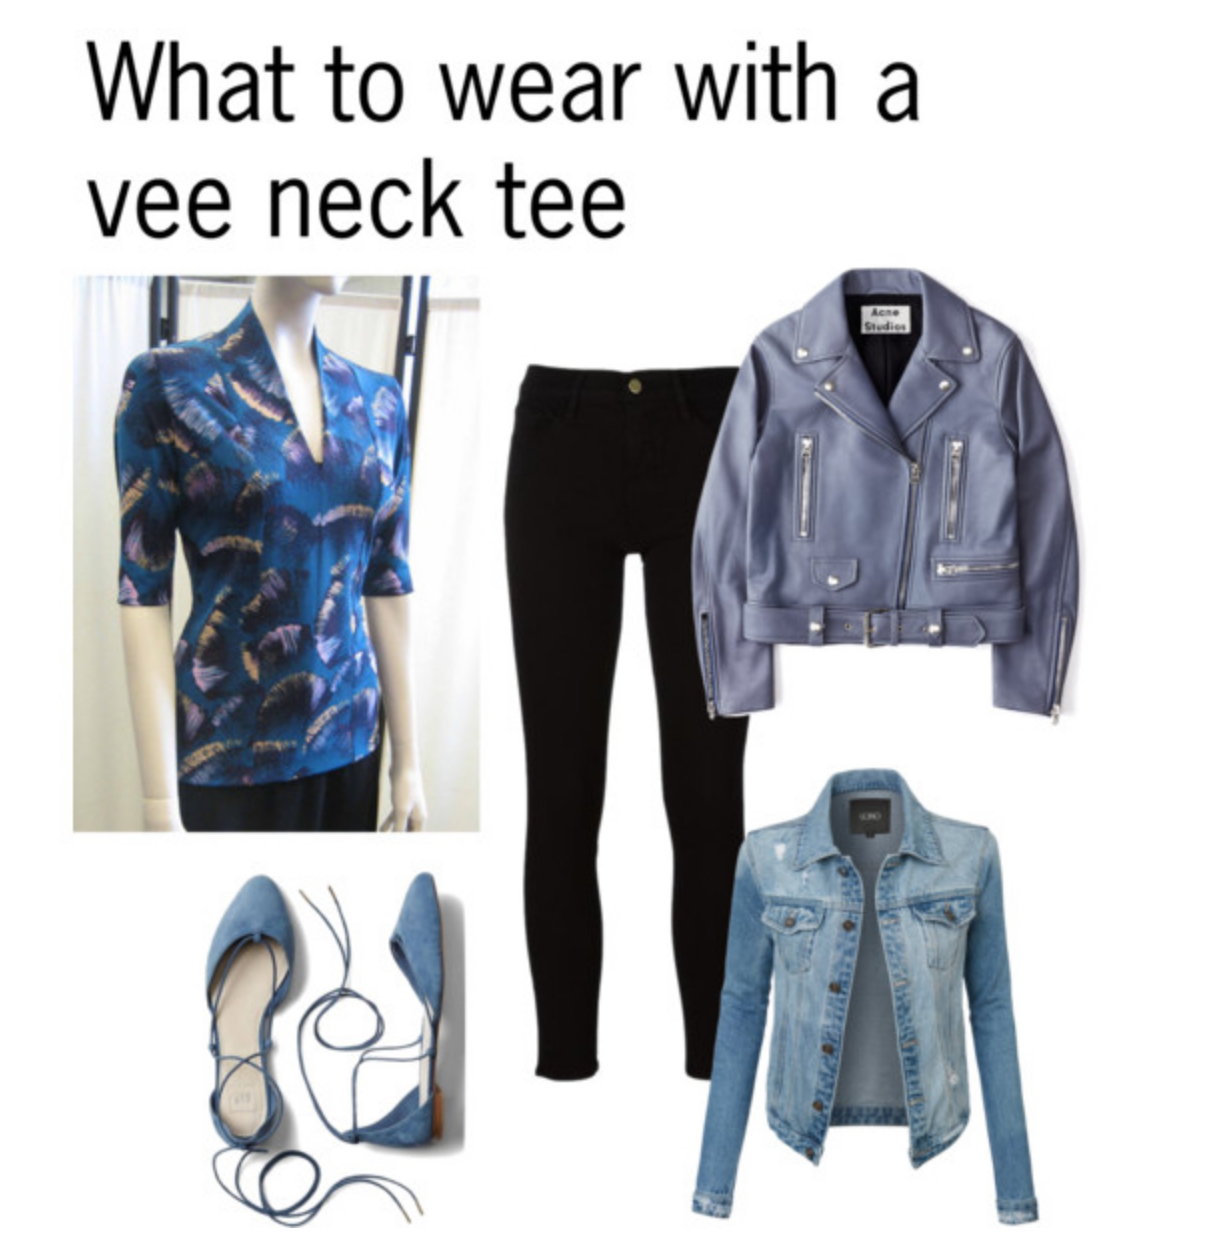 From left: Vee Neck Tee in a print, with elbow length sleeves, black skinnyjeans, a moto jacket or a jean jacket and suede flats.